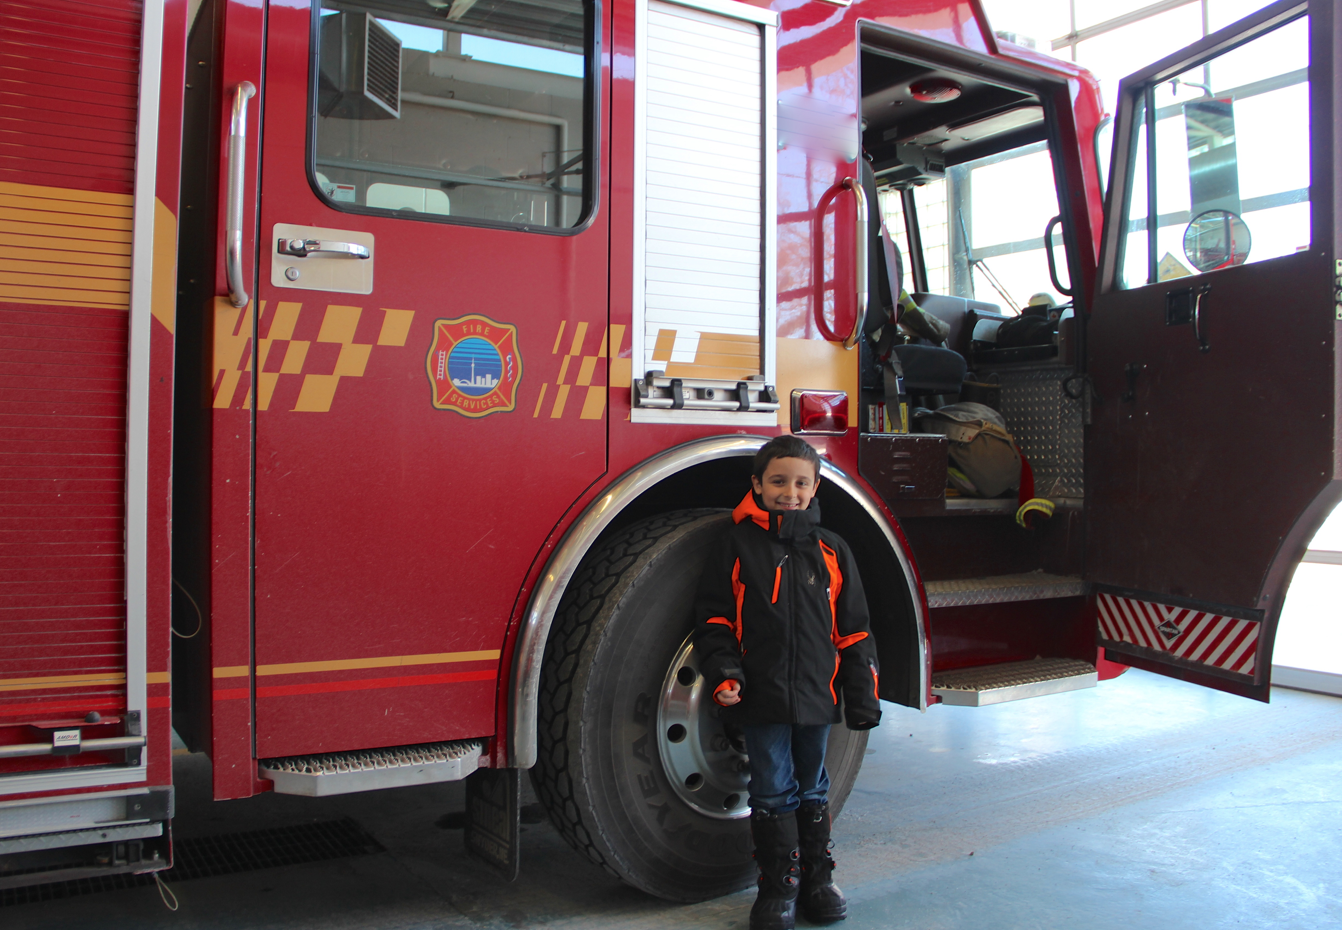 Community Helpers: A Visit With a Local Firefighter - Fire Truck